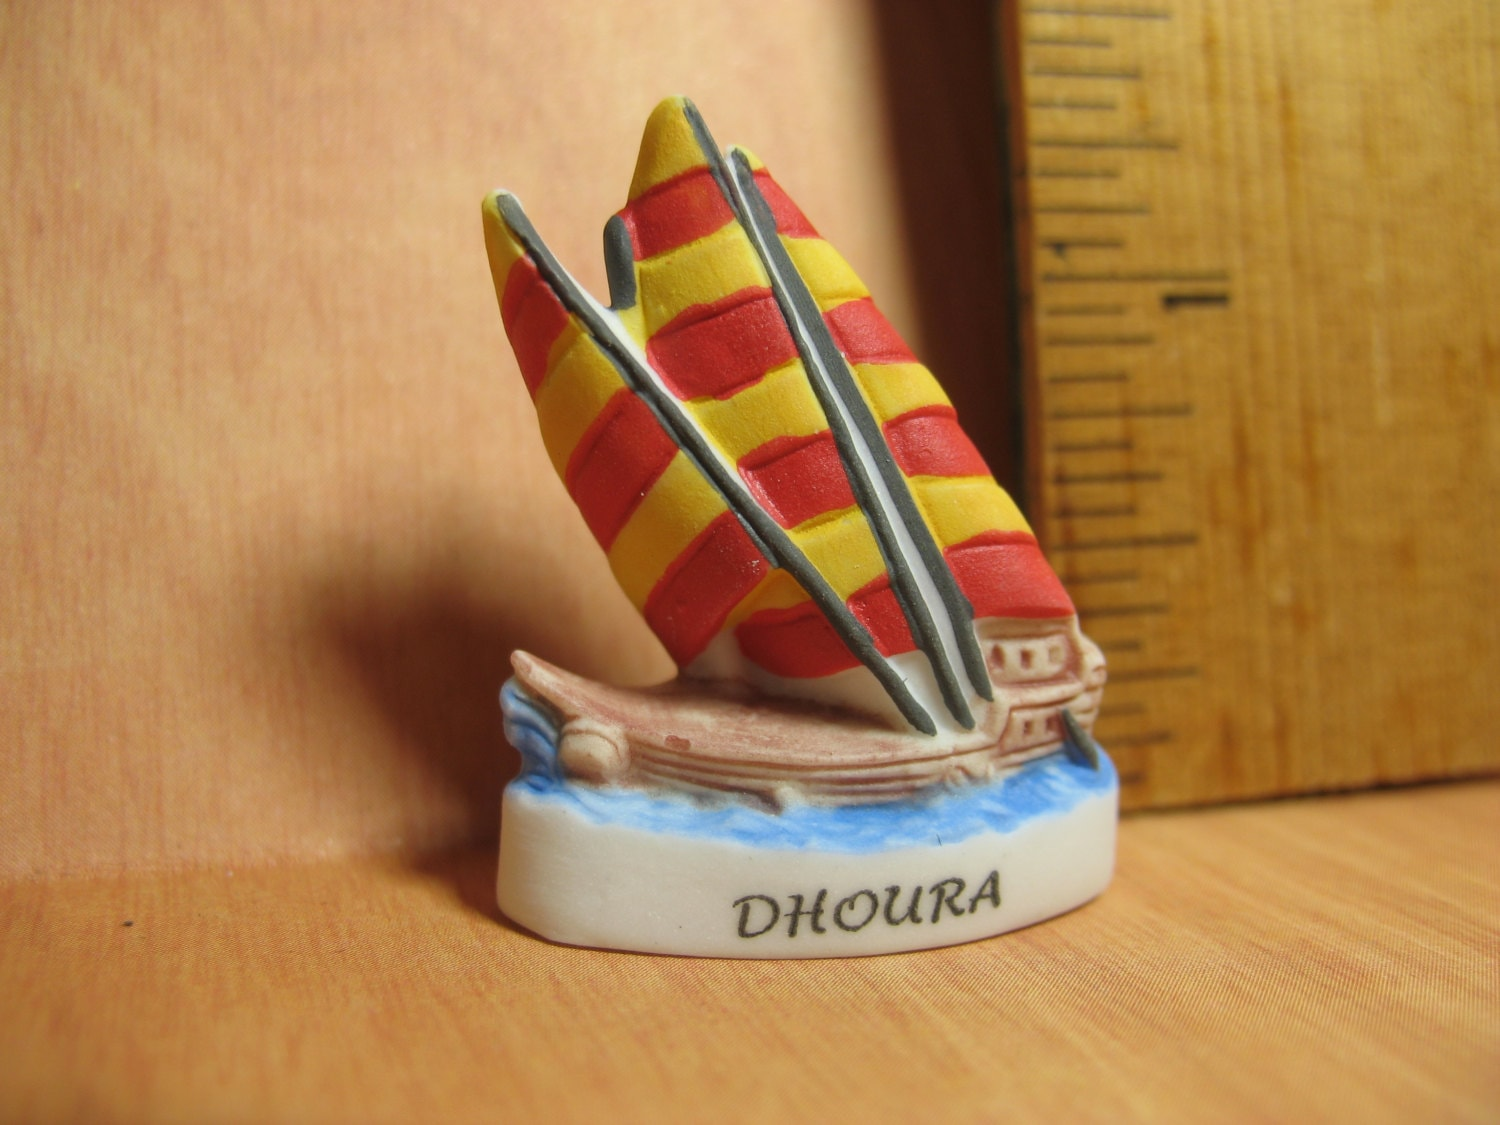 ANCIENT SHIPS Dhoura Medieval Arab Khinasi Sailing Vessel Boat - French  Feve Feves Porcelain Figurine Miniature A3